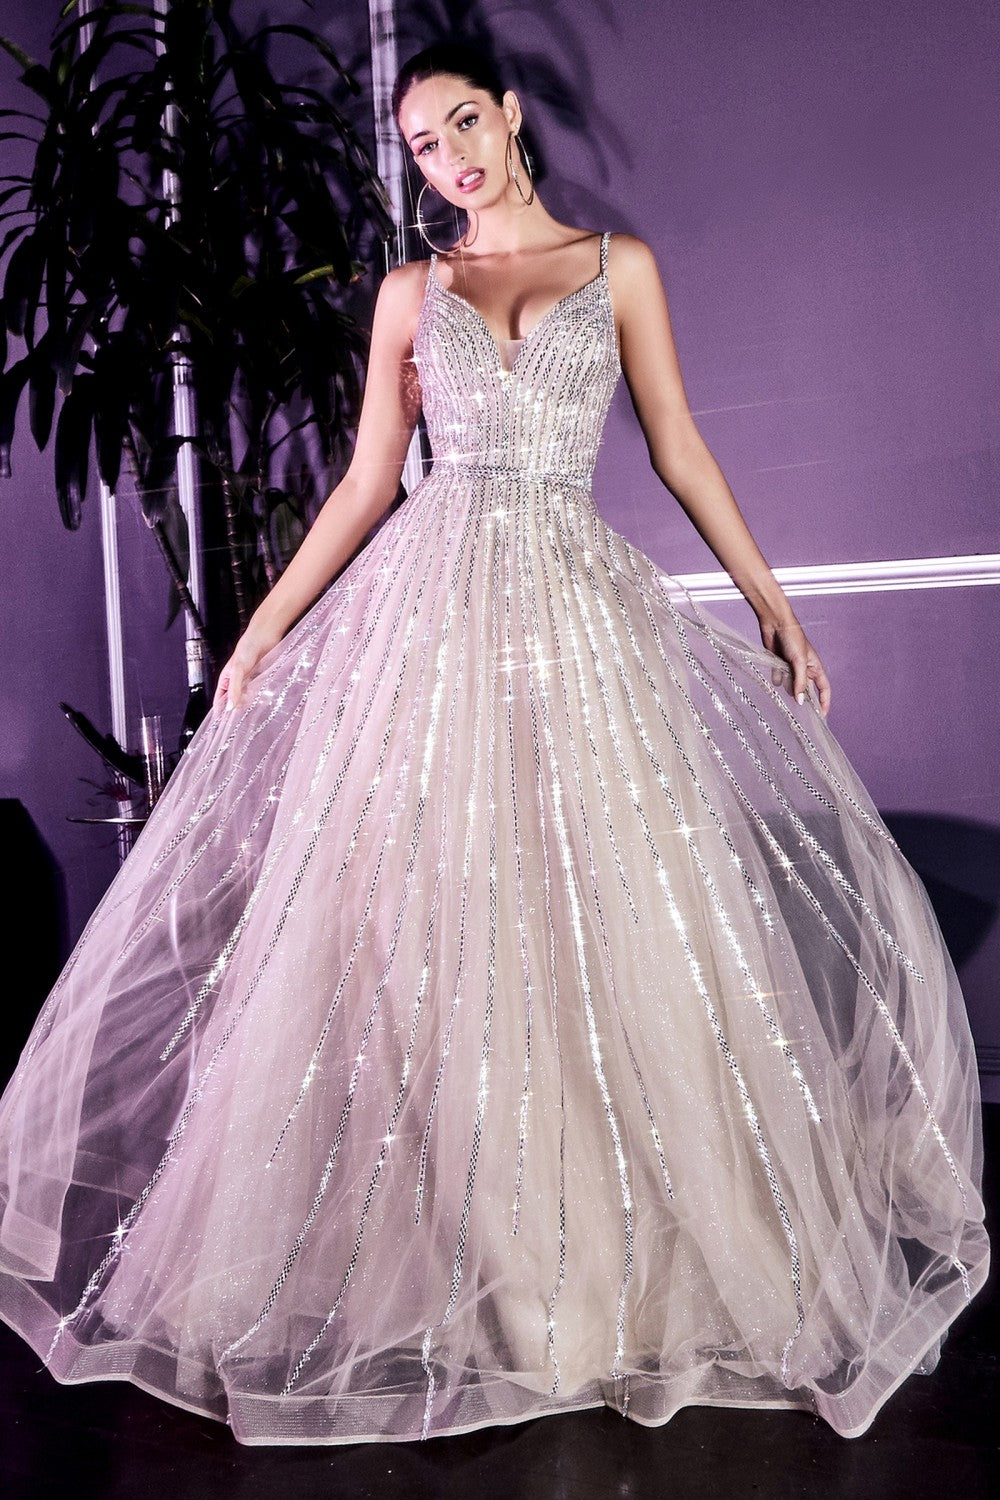 CD CD940 - A Line Glitter Tulle Prom Gown Fully Beaded & Plunging Open Back